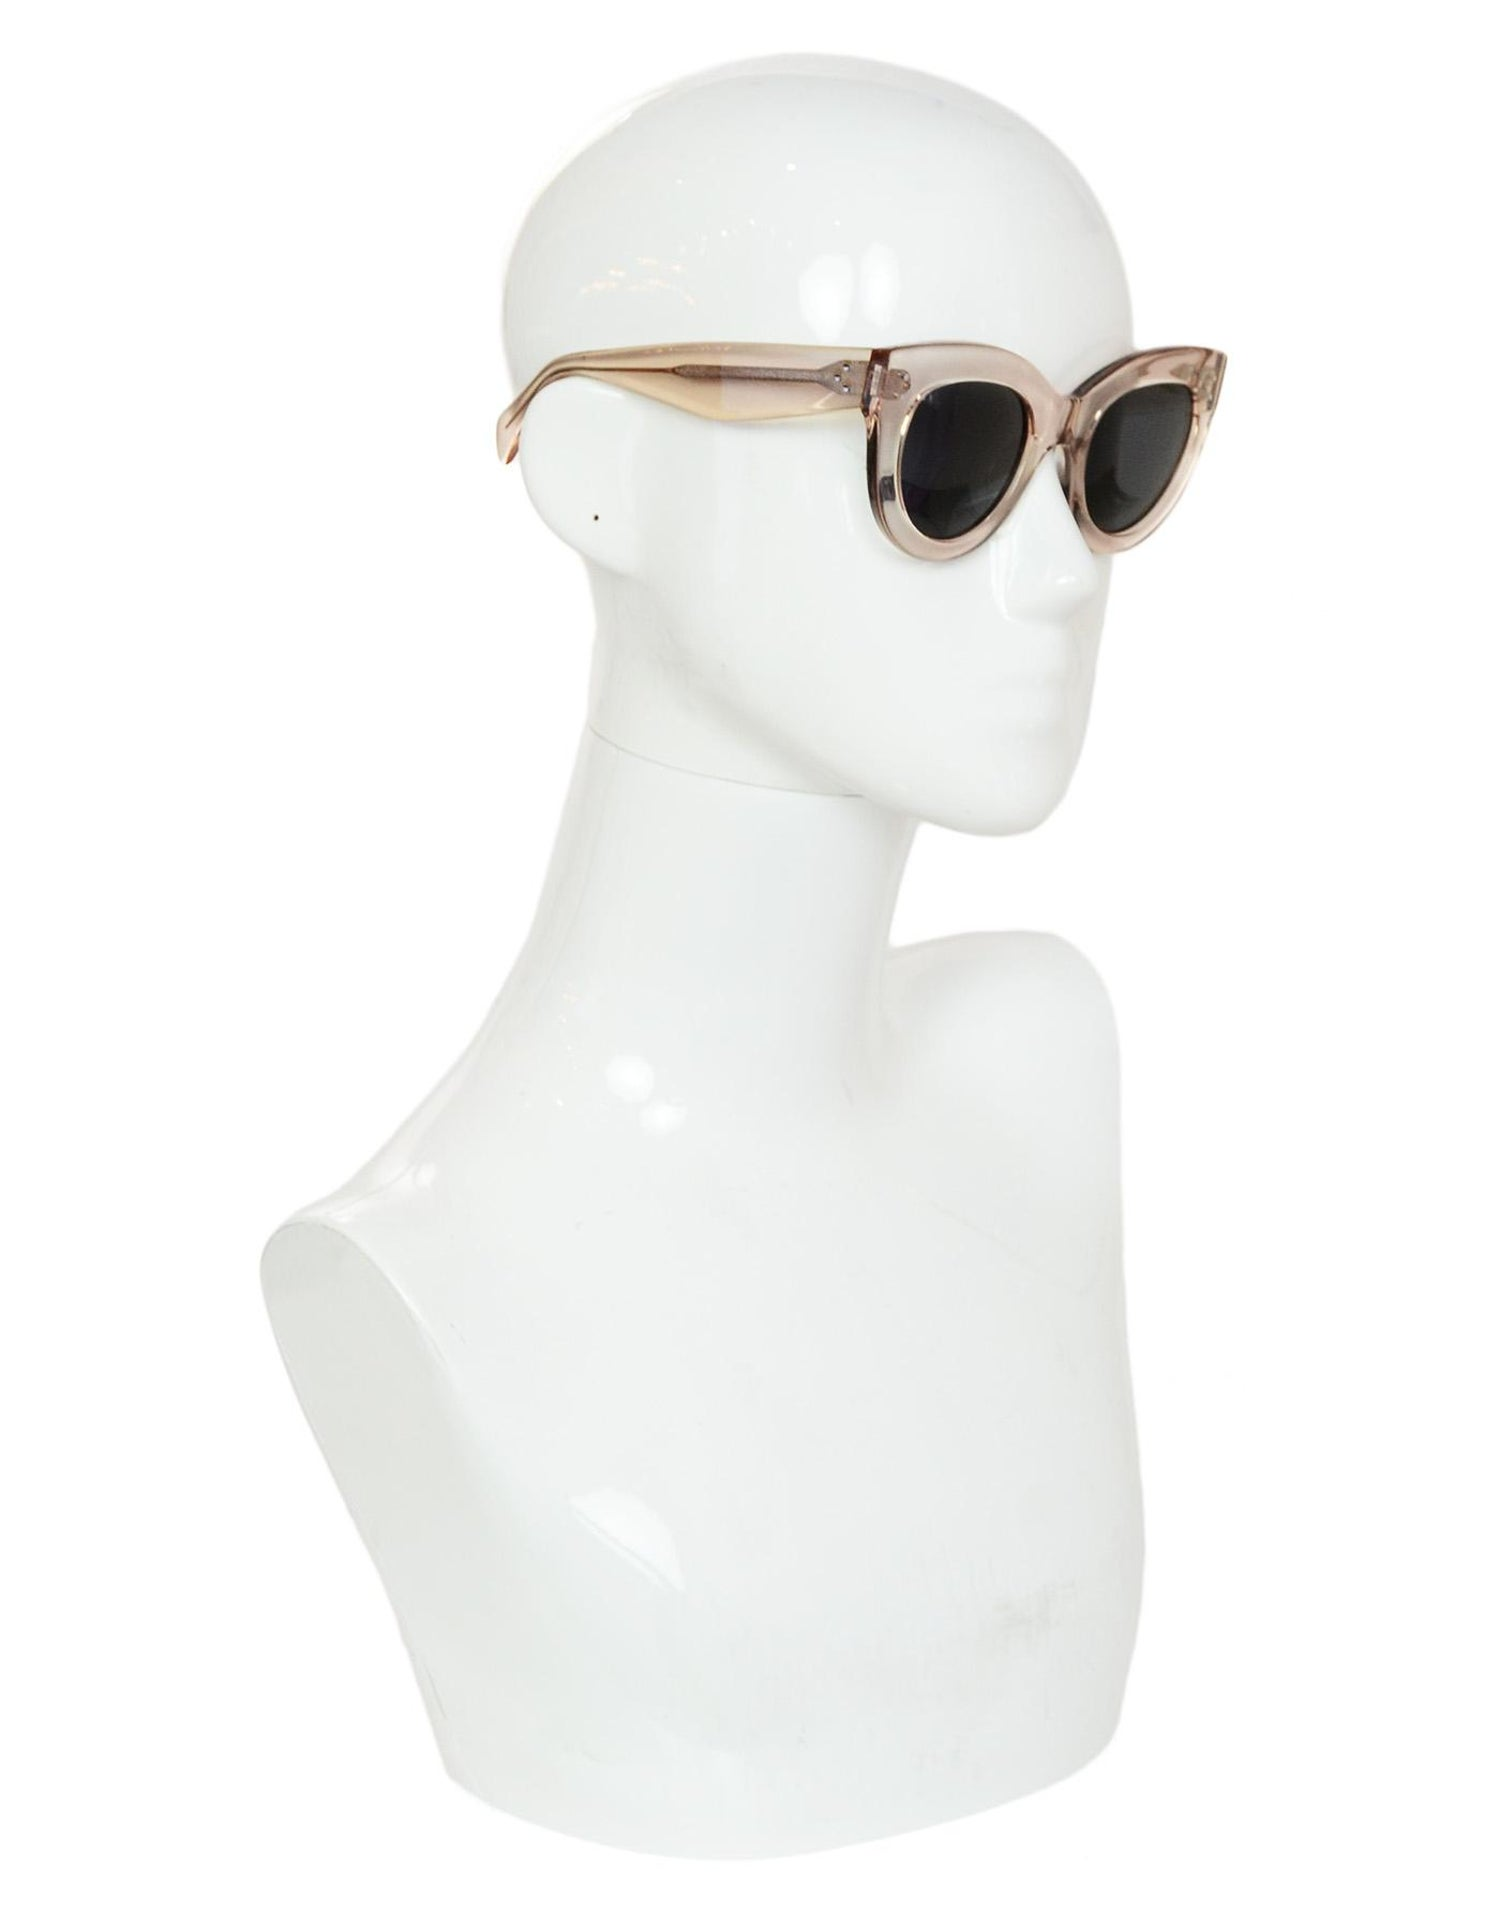 620b6828034 Celine Transparent Peach Clear Cat Eye Sunglasses with Case For Sale at  1stdibs